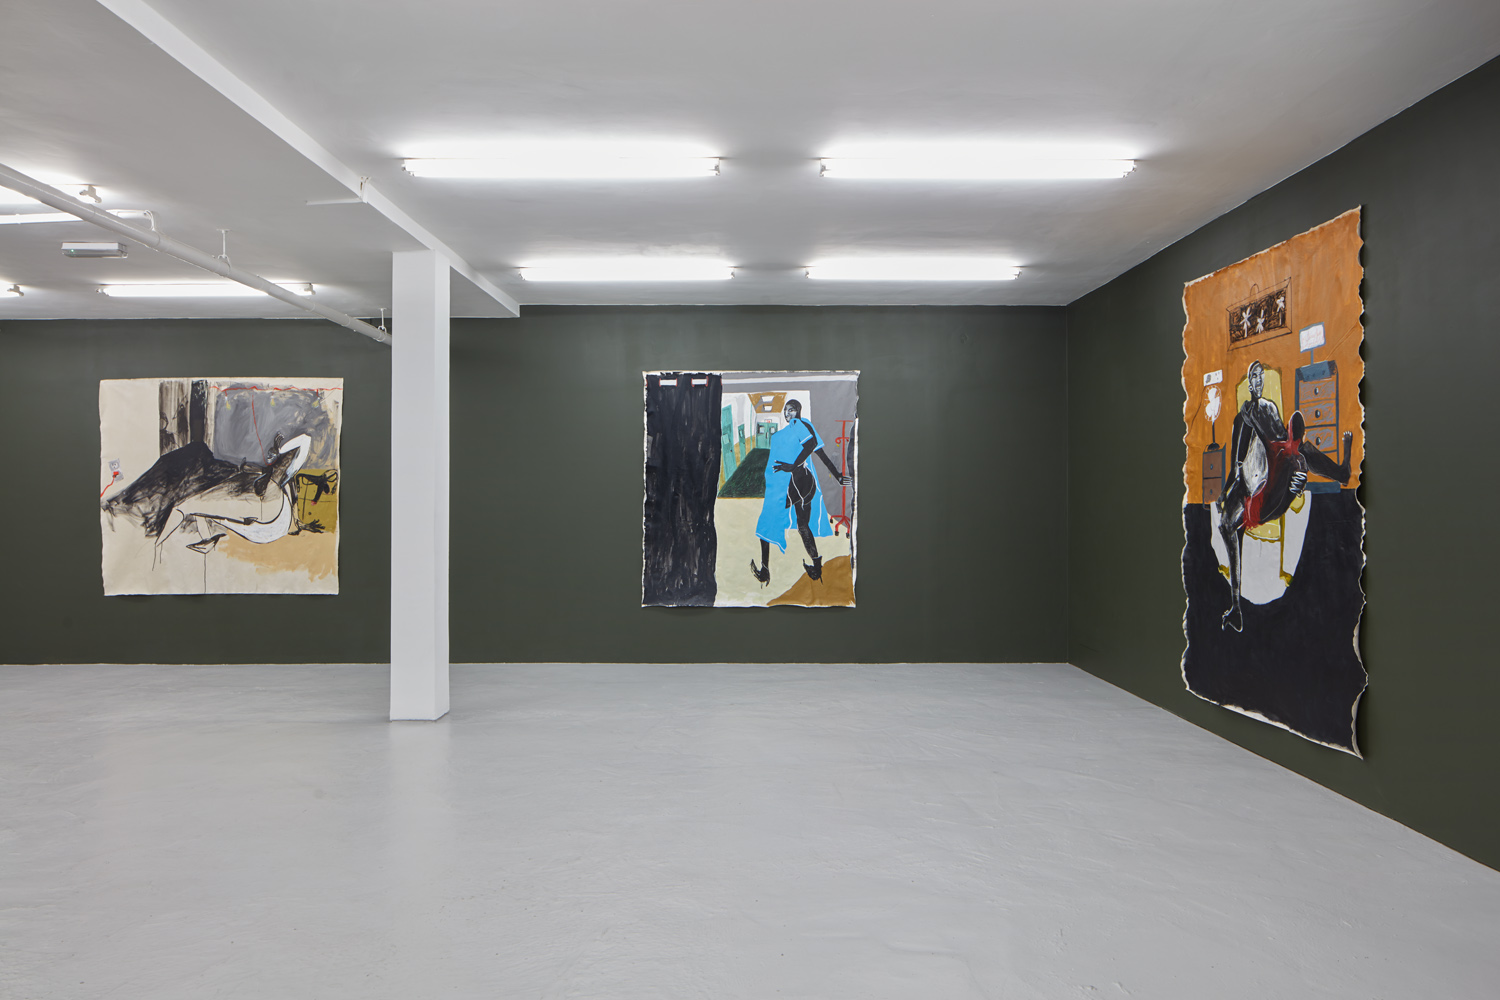 Installation view 2 Shadi Al-Atallah 'Fuck, I'm stuck!' J HAMMOND PROJECTS London 2019 low res.jpg